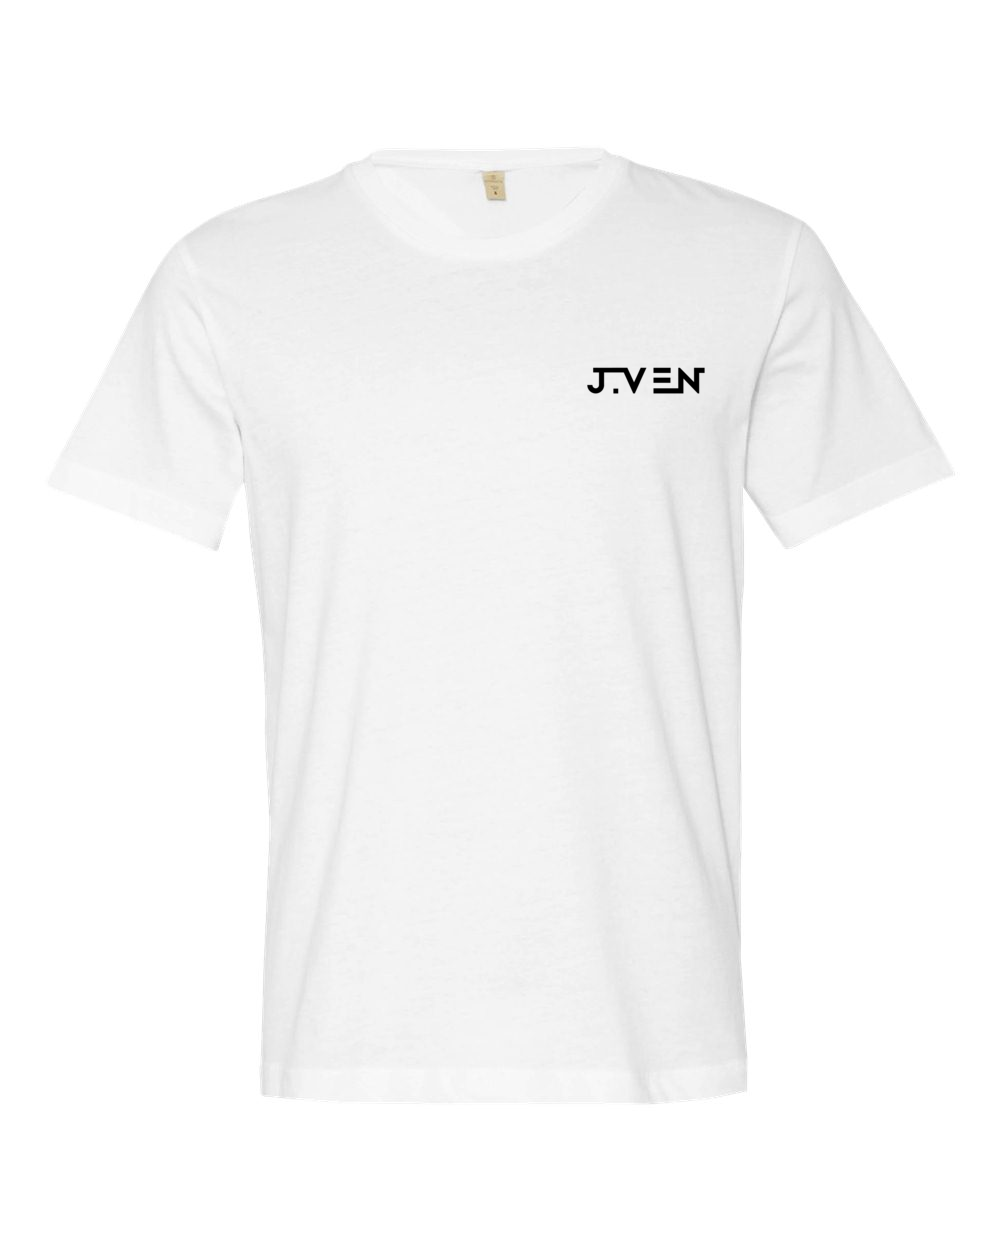 Image of J.VEN Men's T-Shirt